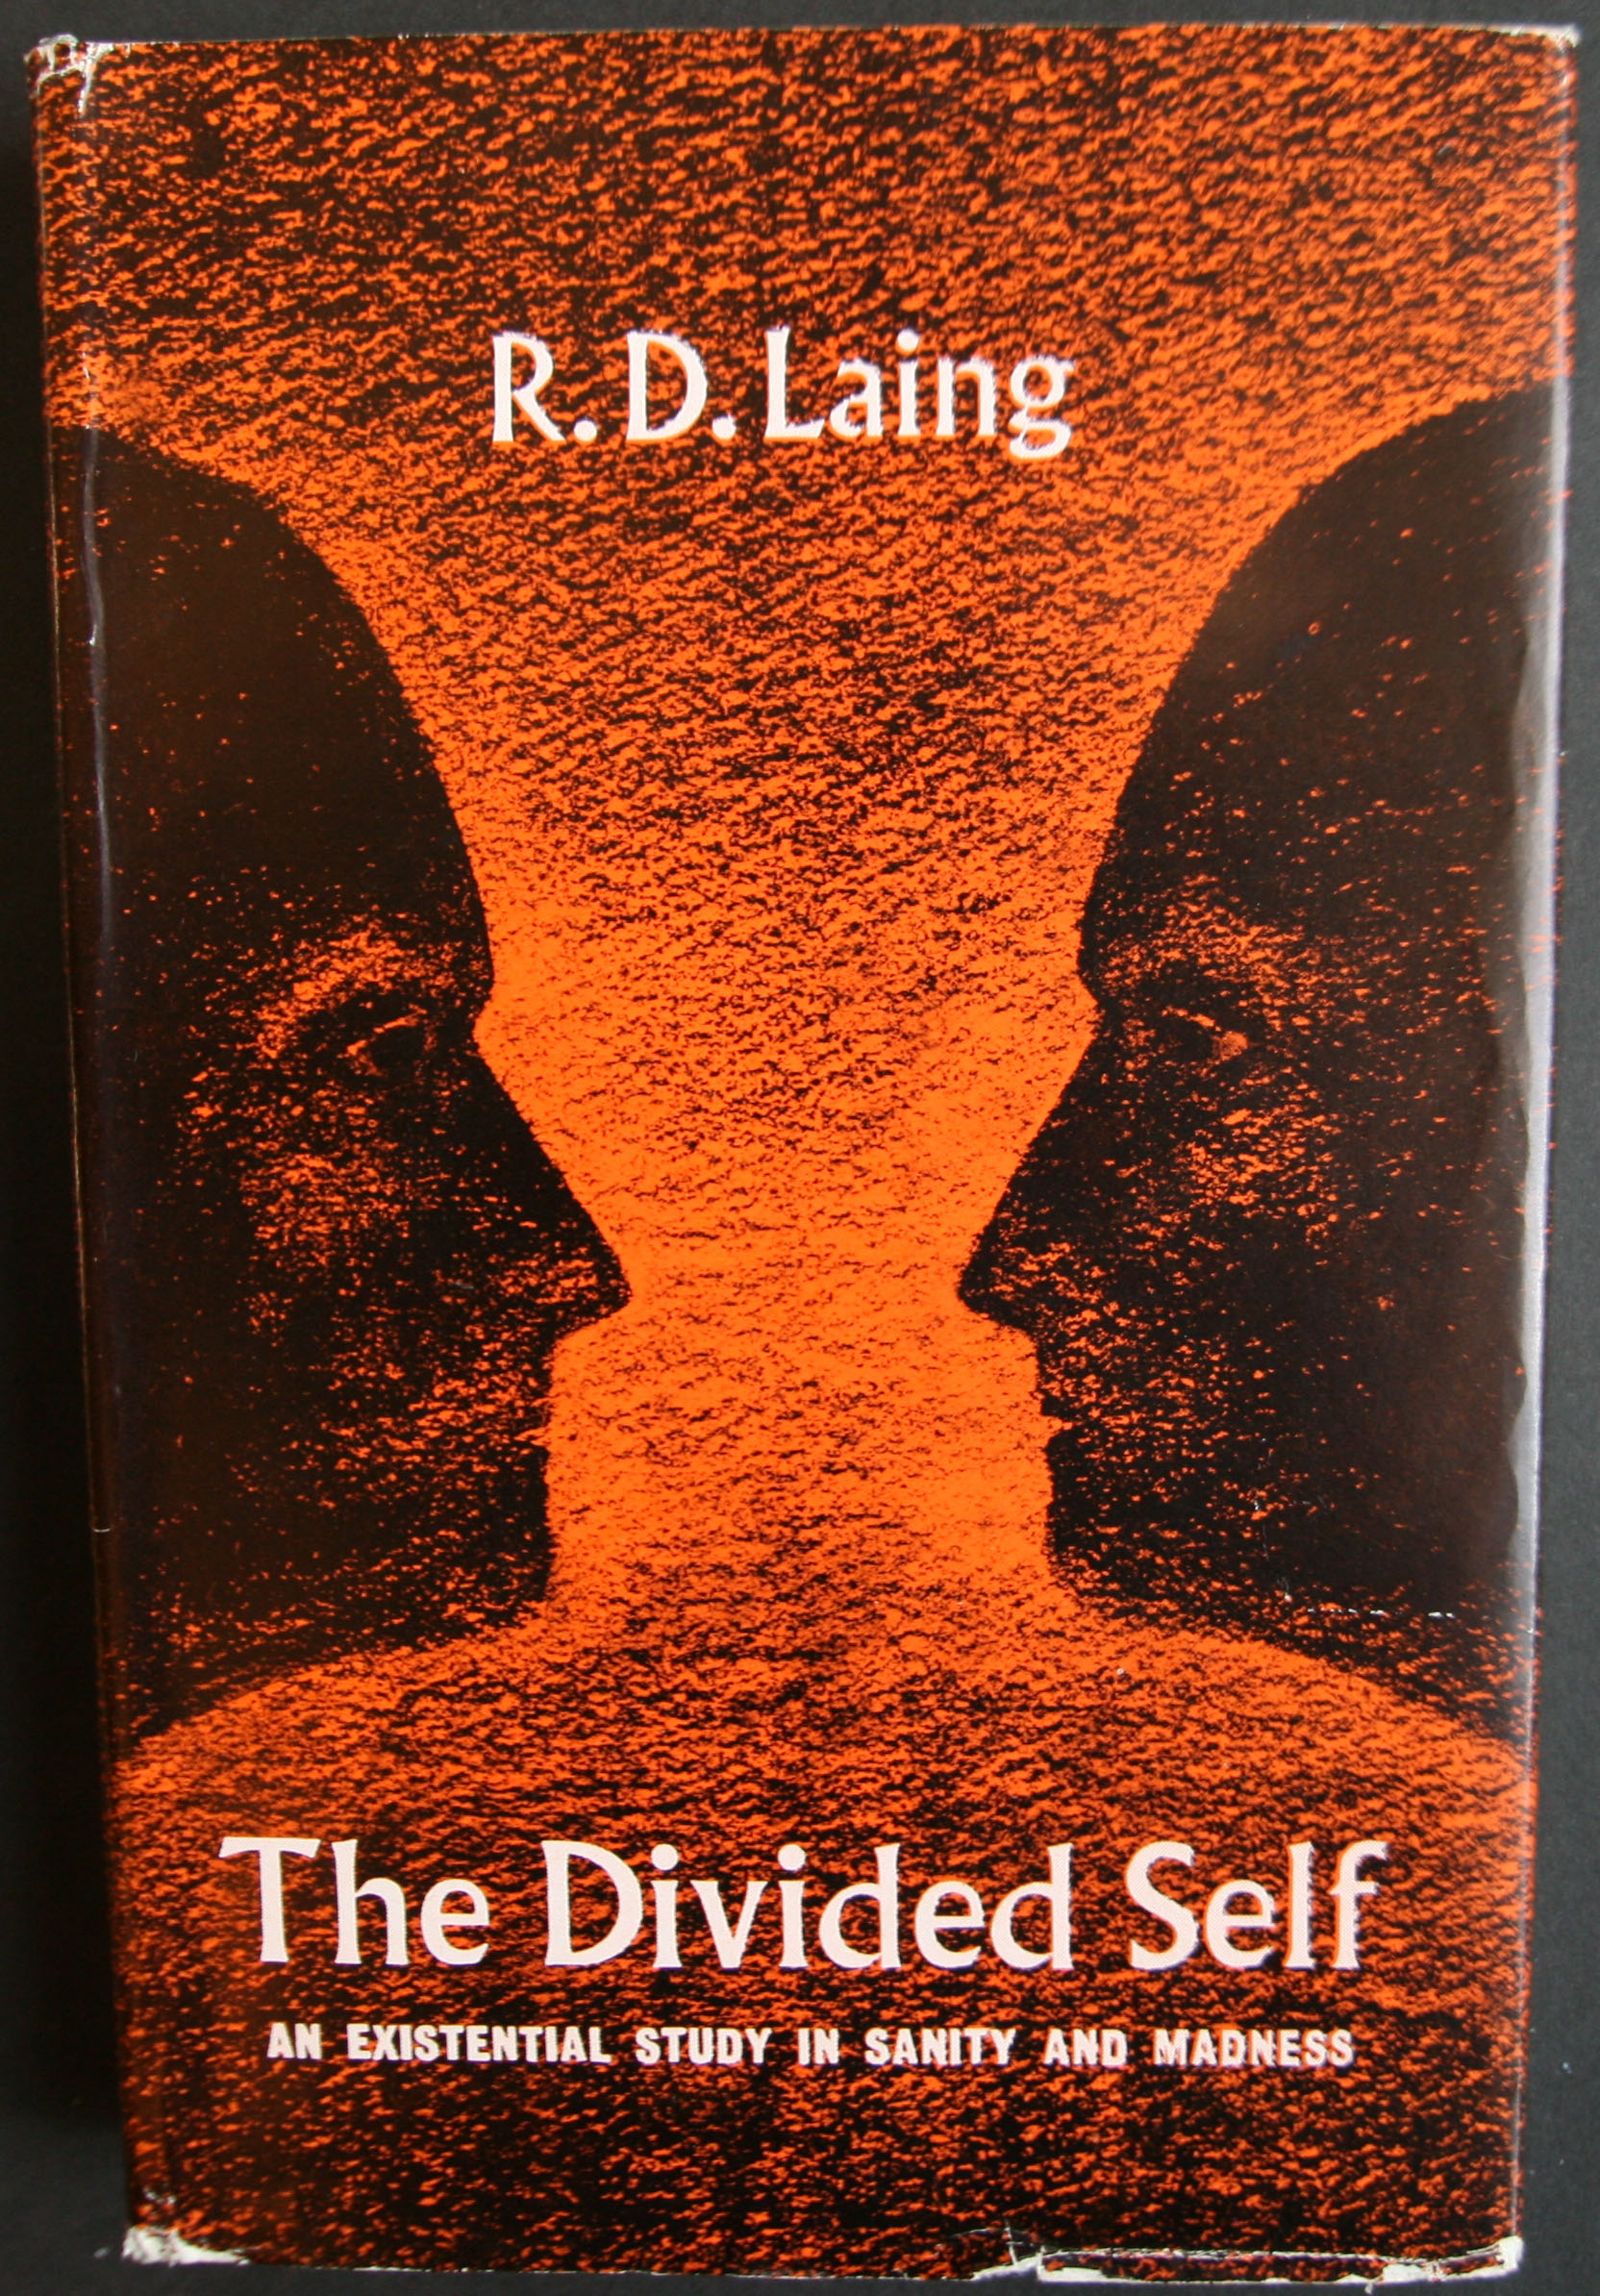 r d laing the divided self first edition